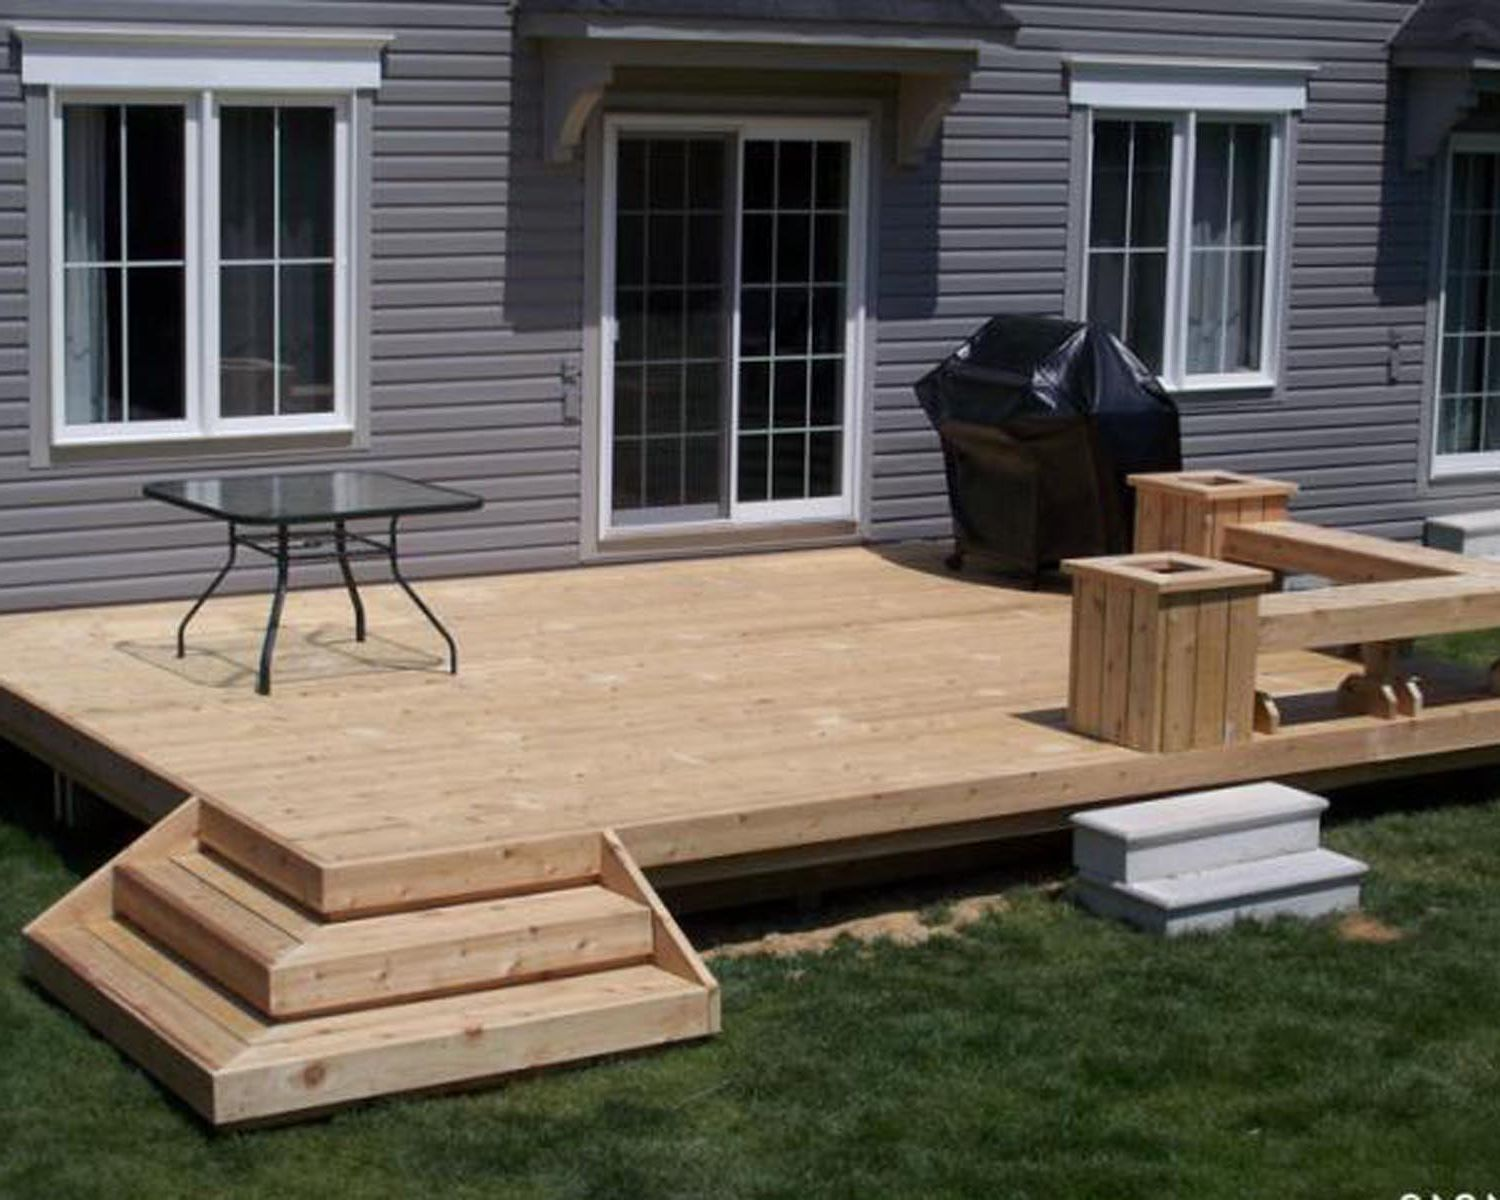 backyard deck ideas - small backyard - 30+ Best Small Deck Ideas: Decorating, Remodel & Photos Back Yard